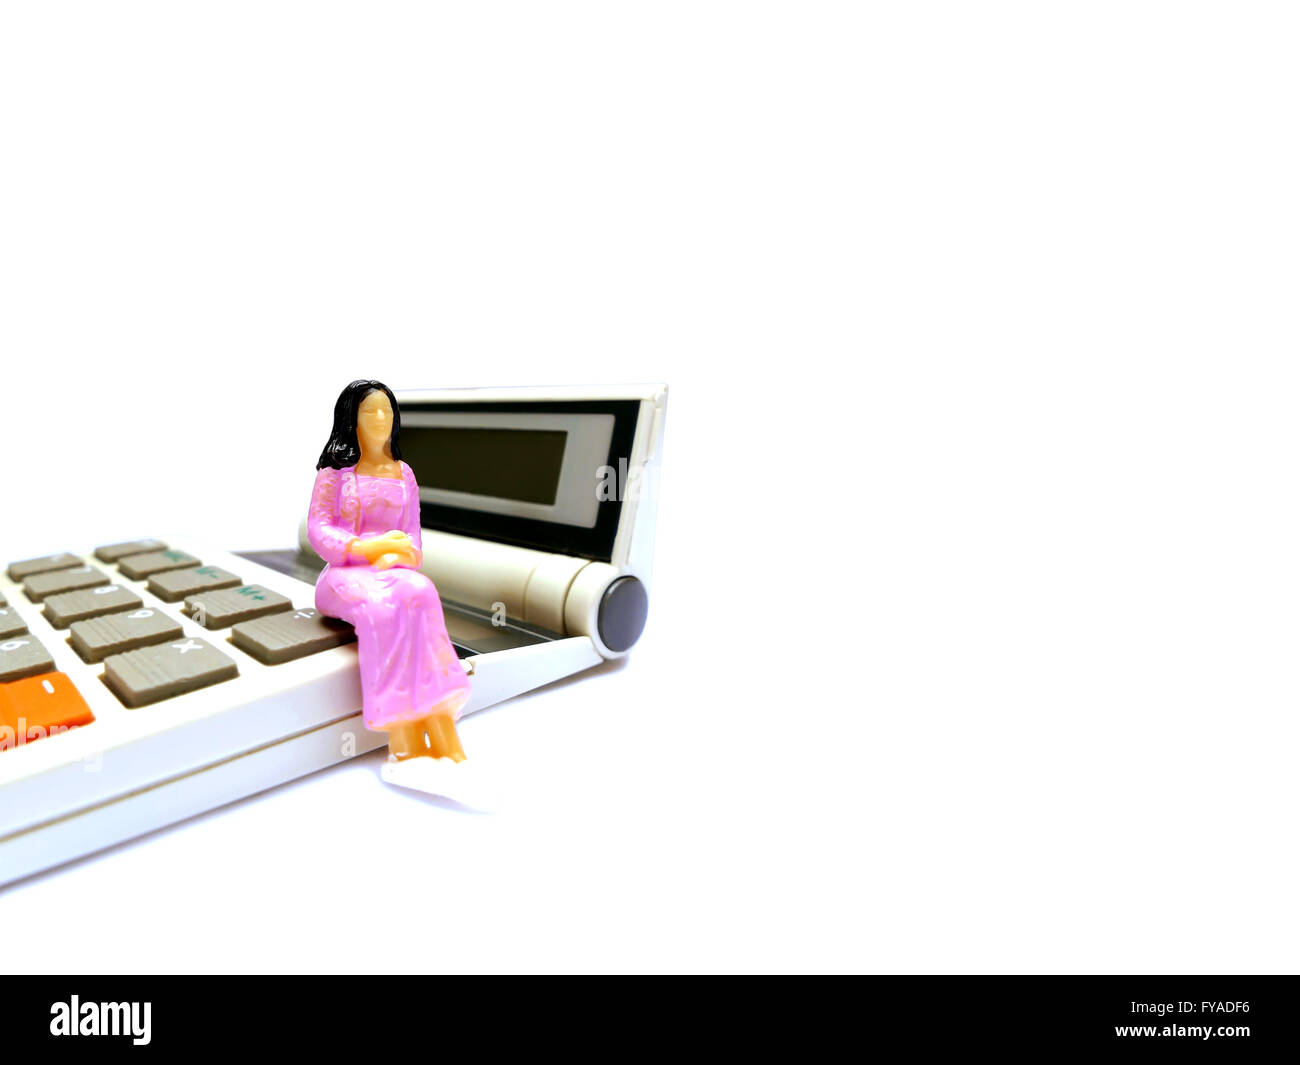 Miniature woman sitting on calculator isolated on white with room for copy space - Stock Image